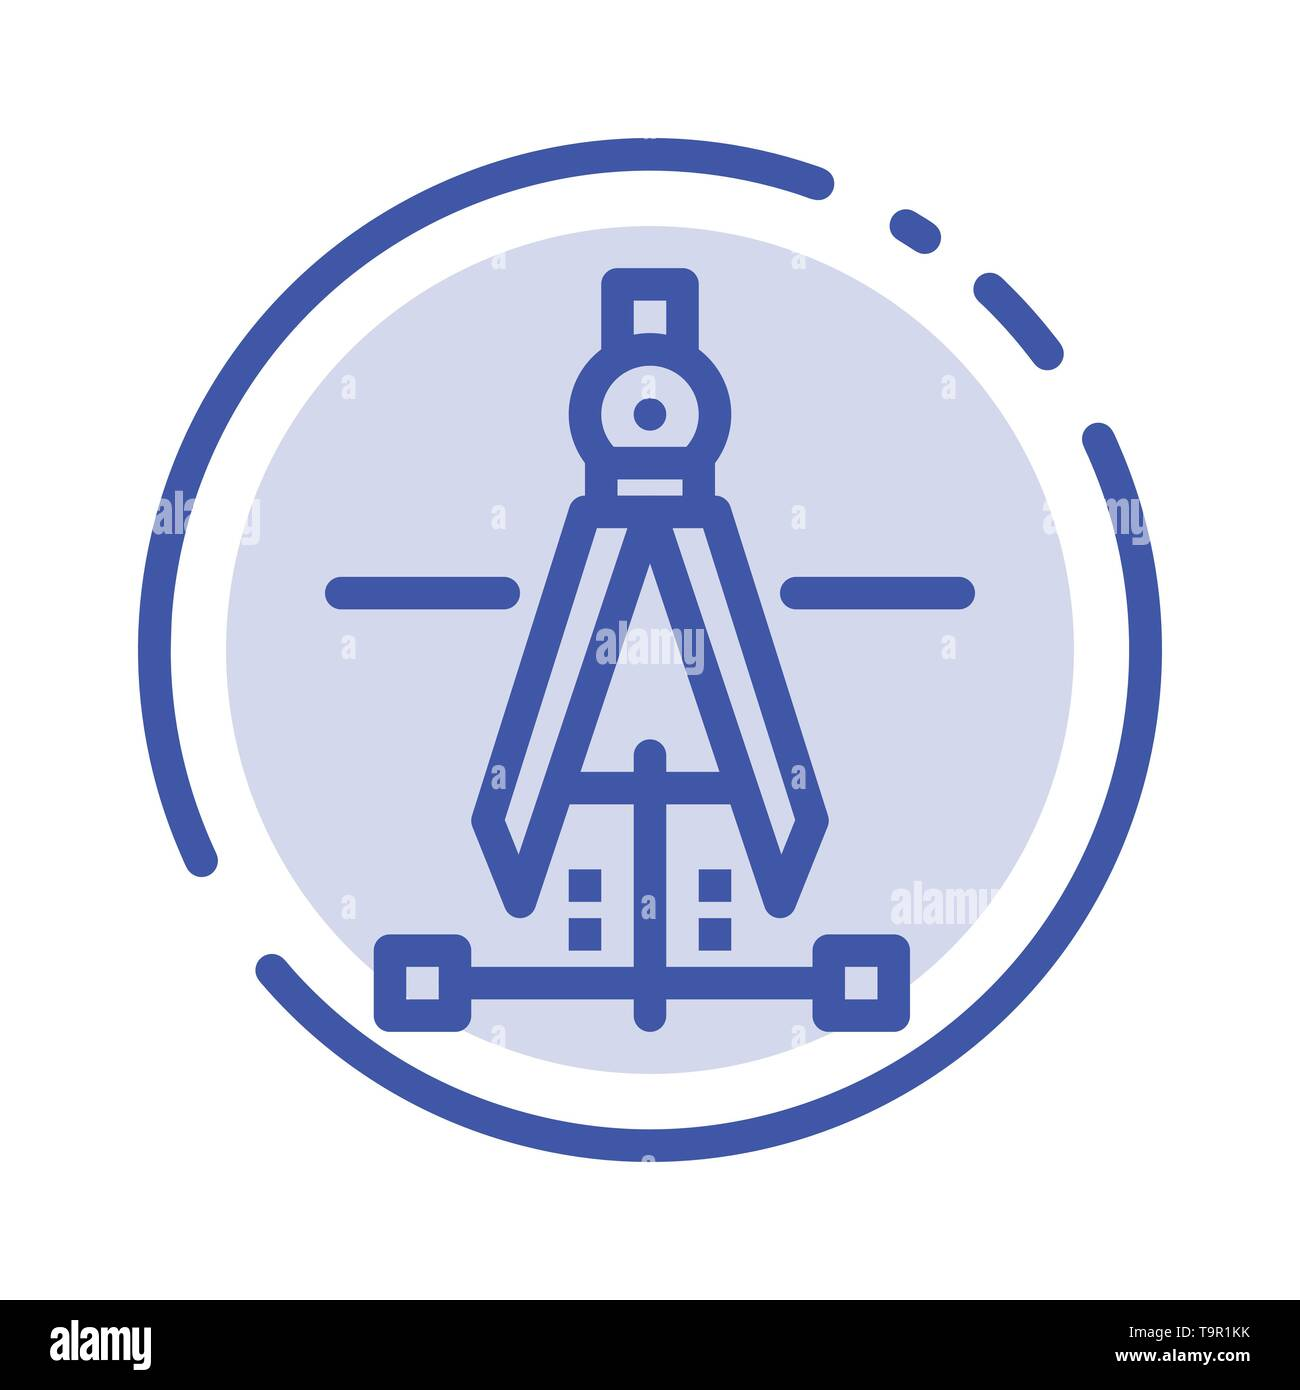 Compass, Drawing, Education, Engineering Blue Dotted Line Line Icon - Stock Image